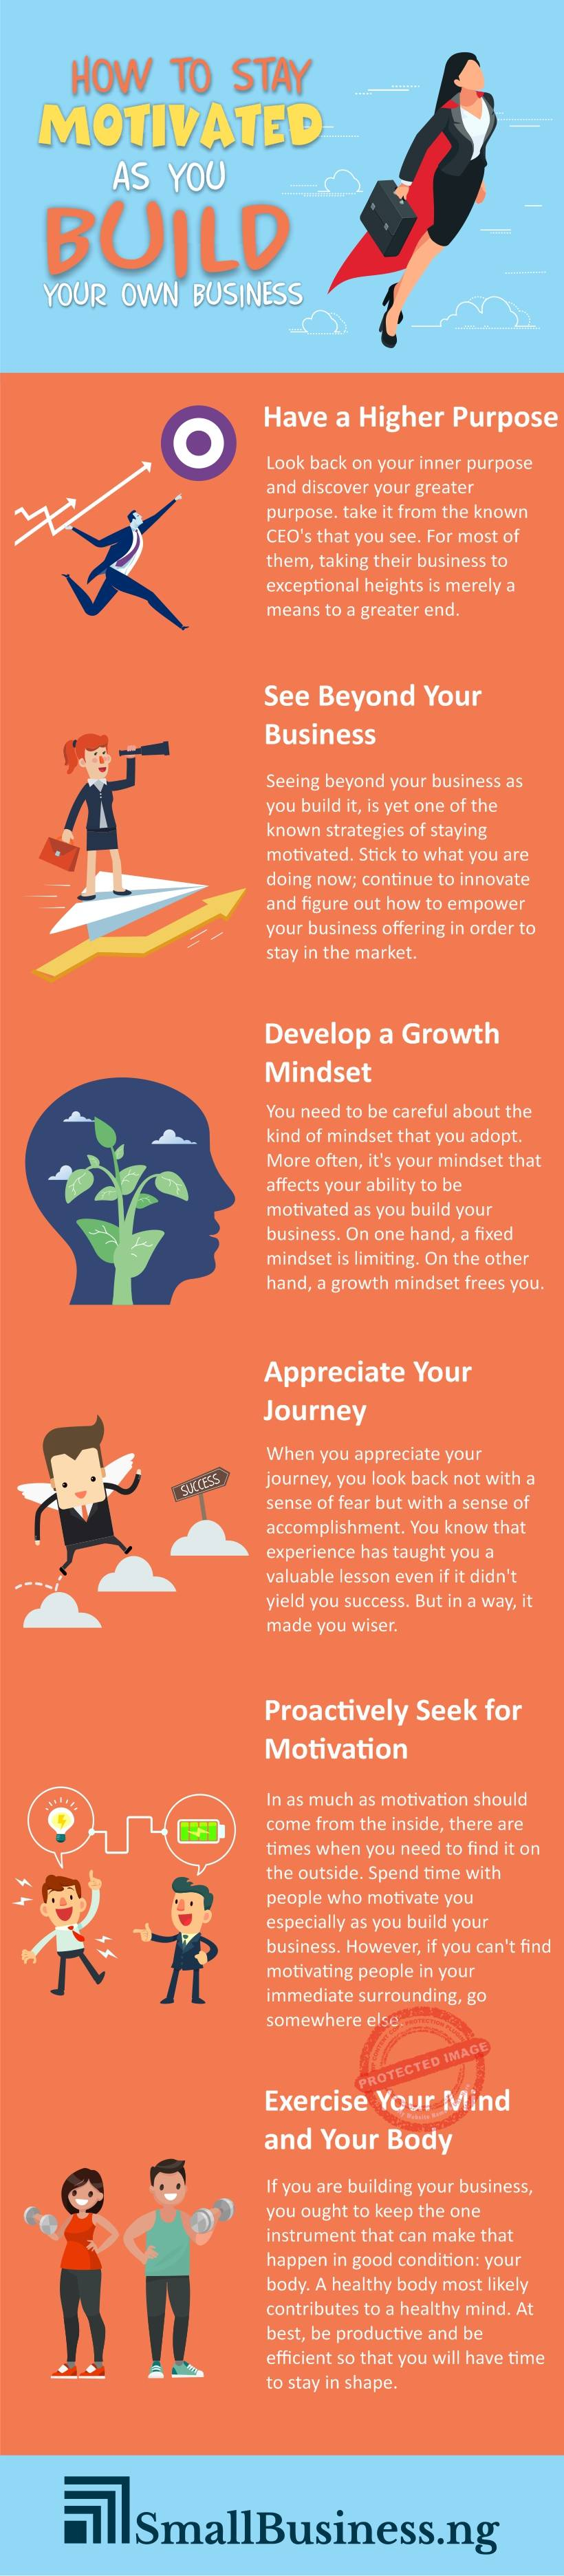 How To Stay Motivated As You Build Your Own Business Infographic